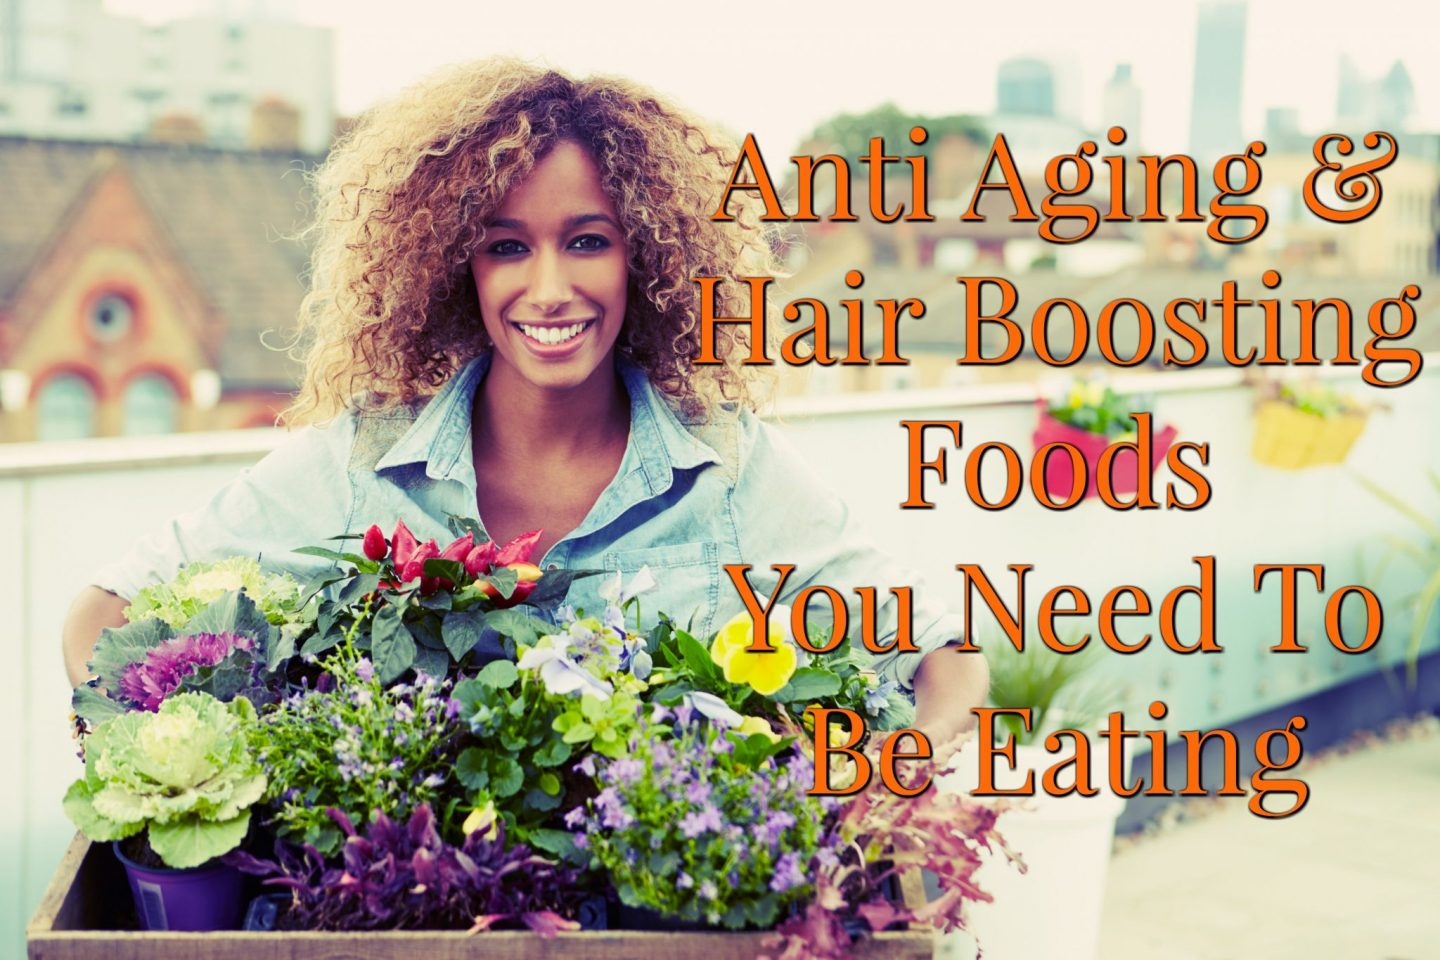 Fight The Aging Process With Anti Aging & Hair Strengthening Foods That You Need To Be Eating. From Olive Oil to Plant Milks, taking on problem with nature.